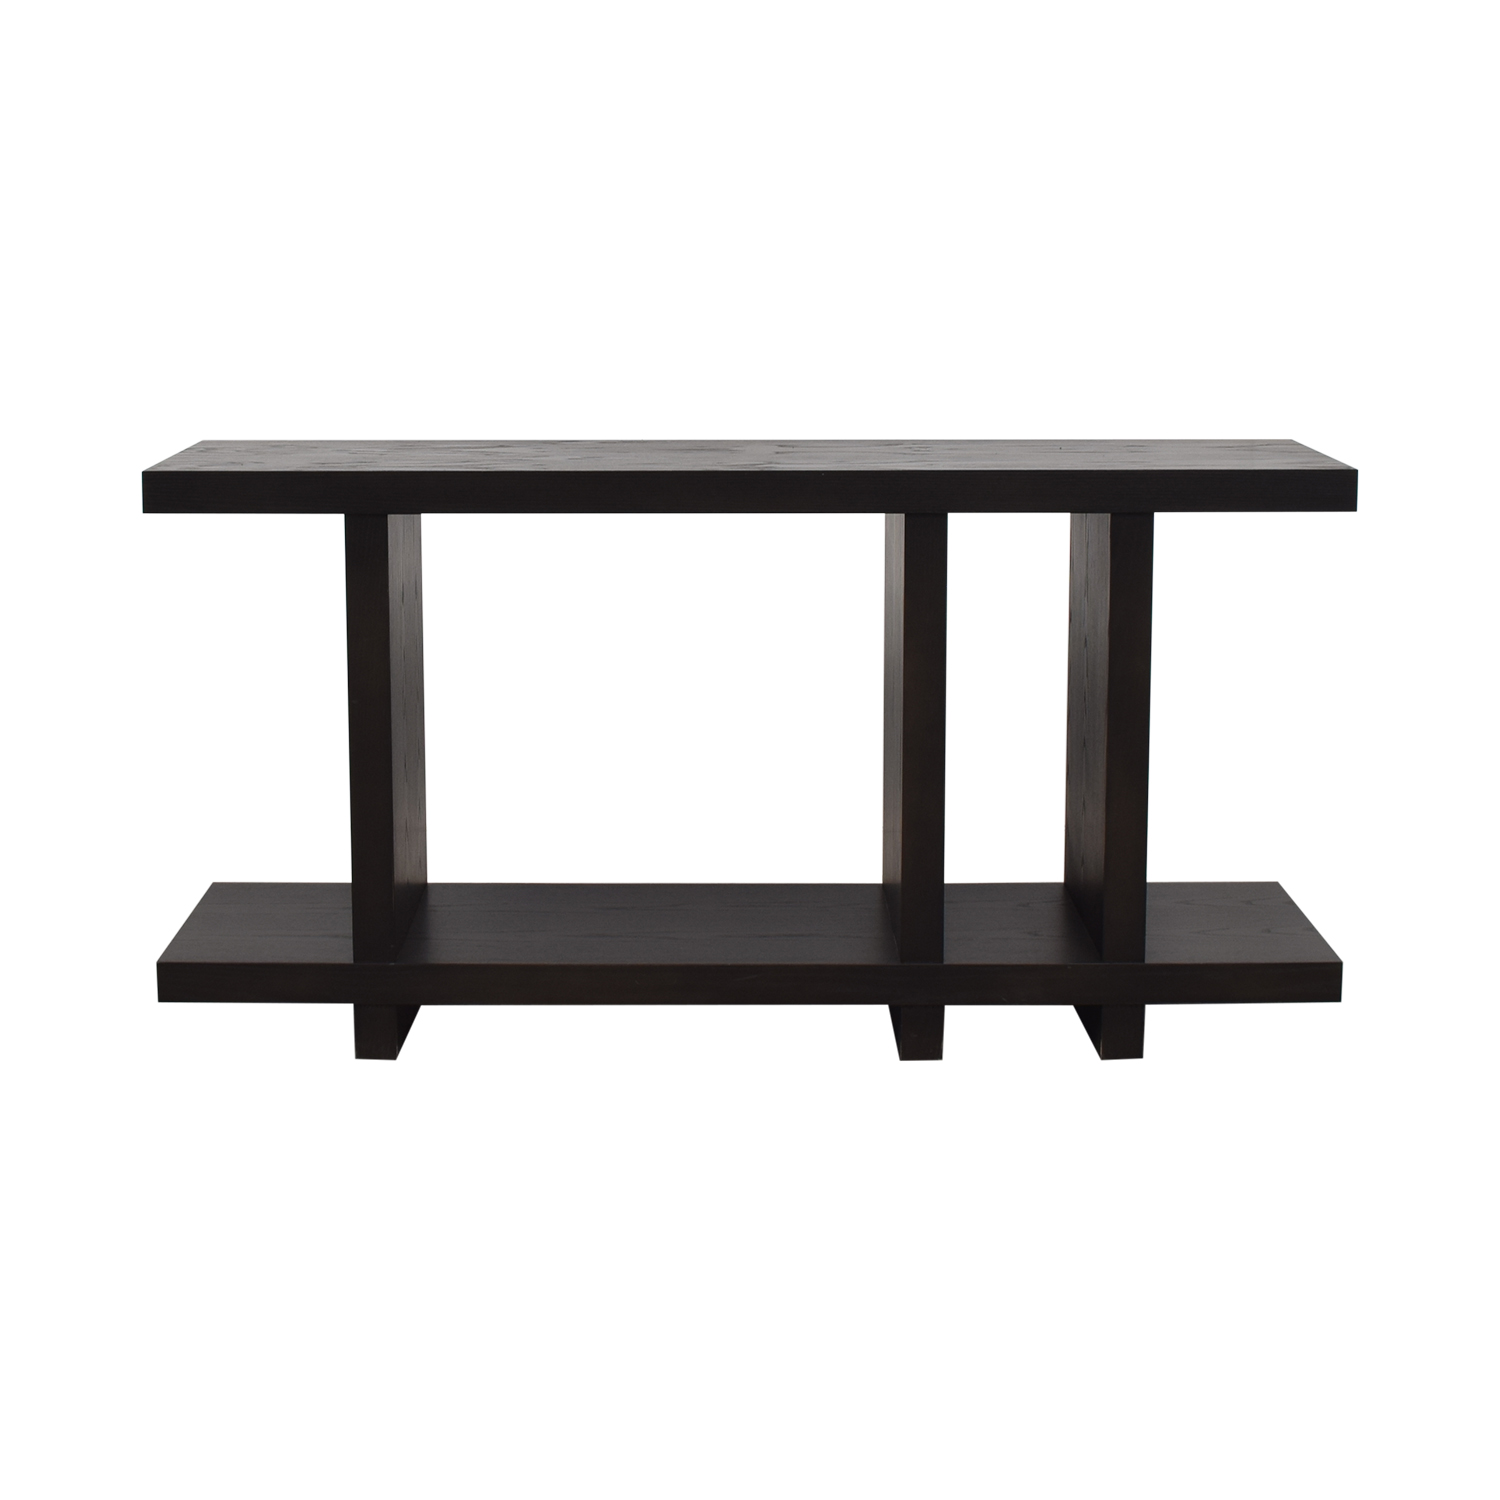 Desiron Desiron Ebony Wood Side Table nj